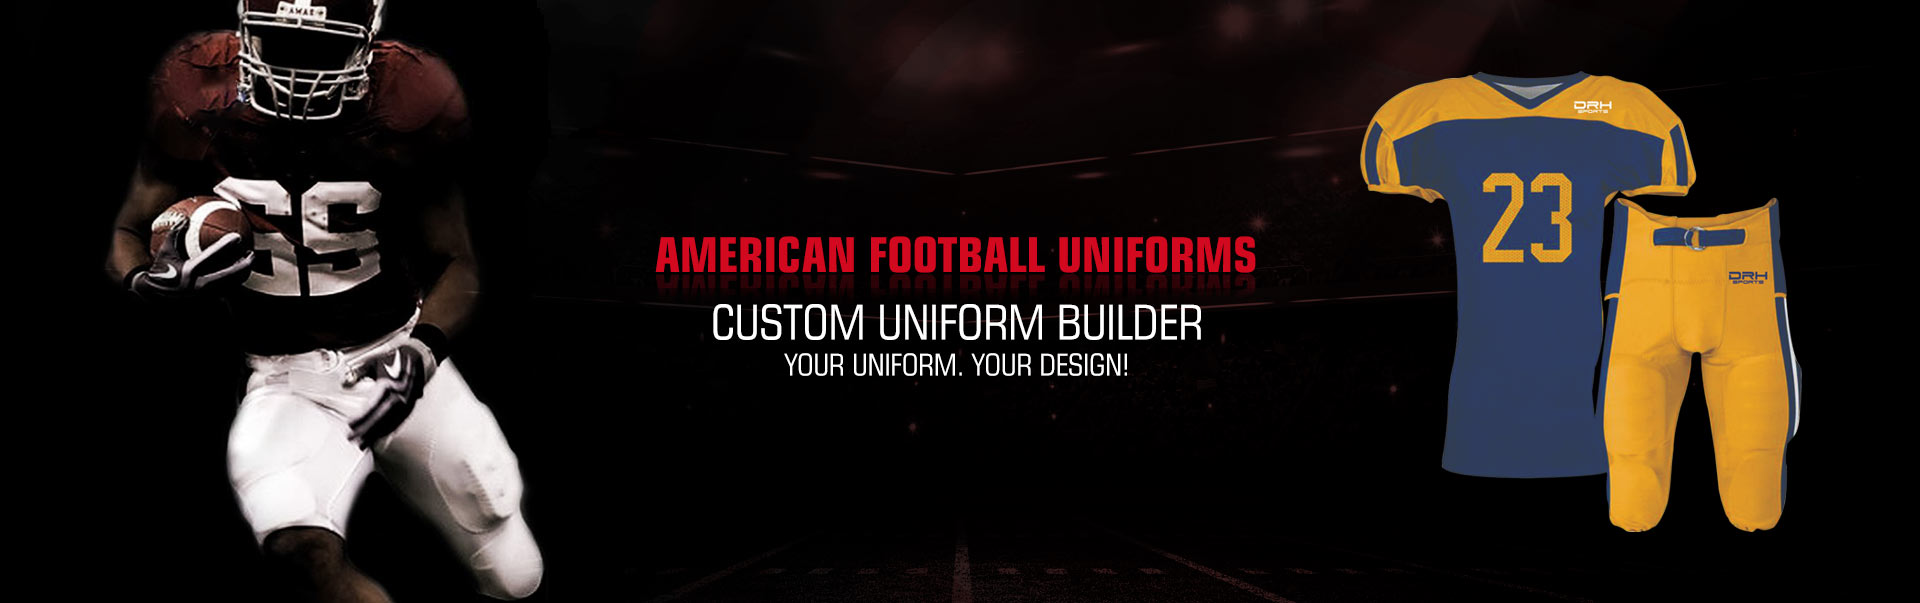 American Football Uniform Wholesaler, Suppliers in Little Rock